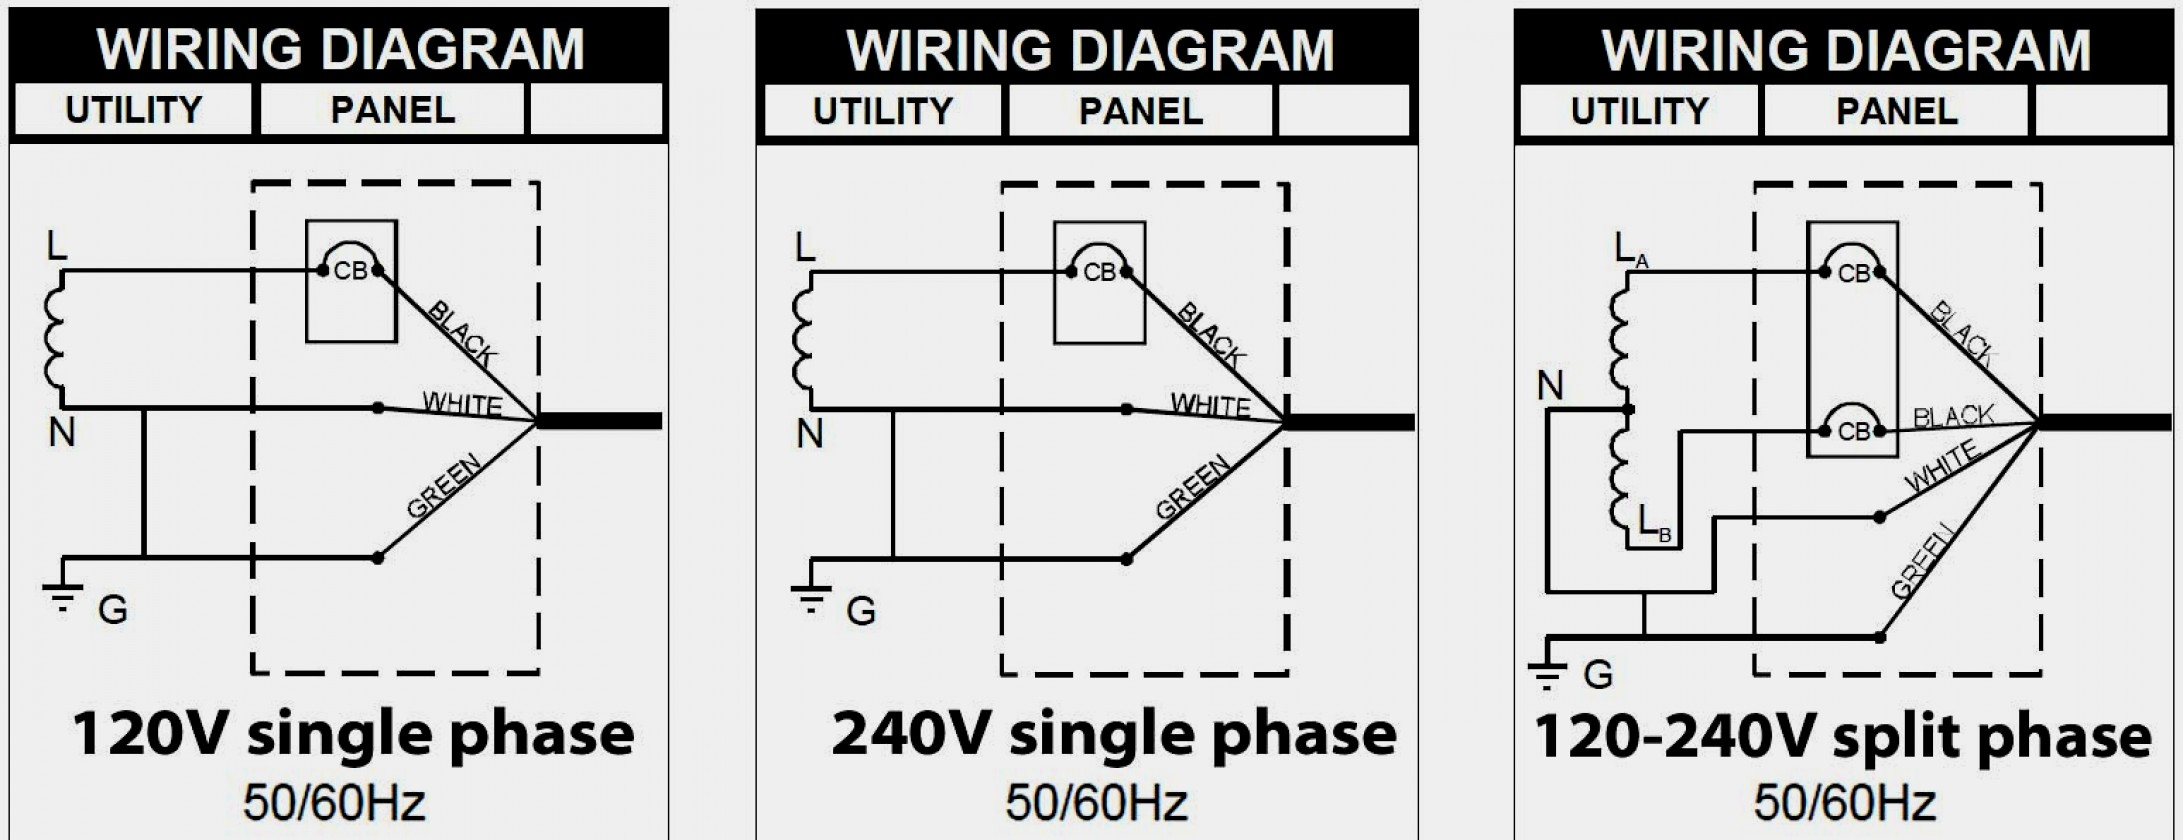 208V Single Phase Wiring Diagram 208 Volt In Wellread Me - Wiring Diagram For 230V Single Phase Motor